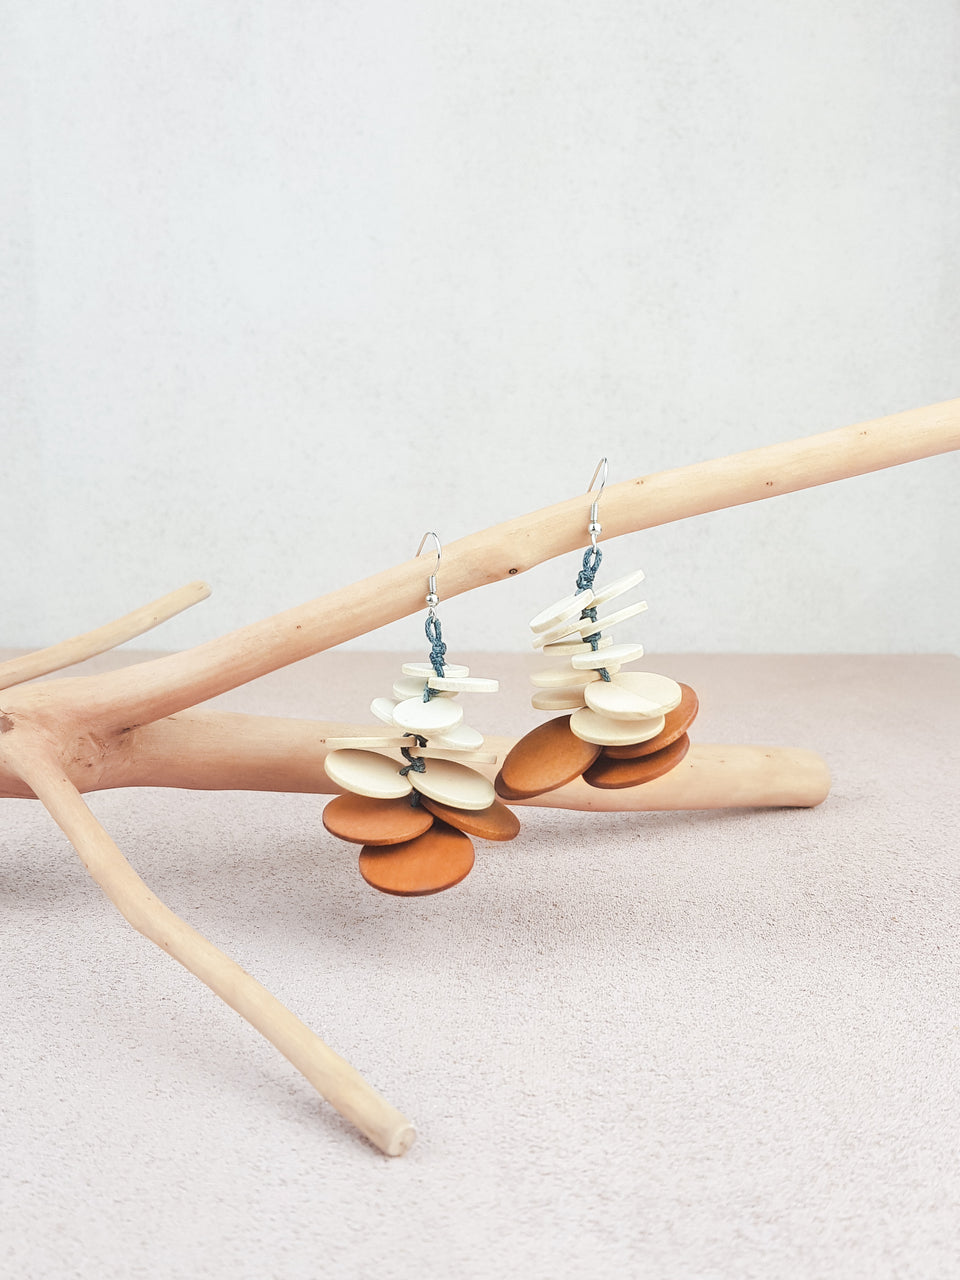 Handmade wood fish hook statement earrings in natural and brown.